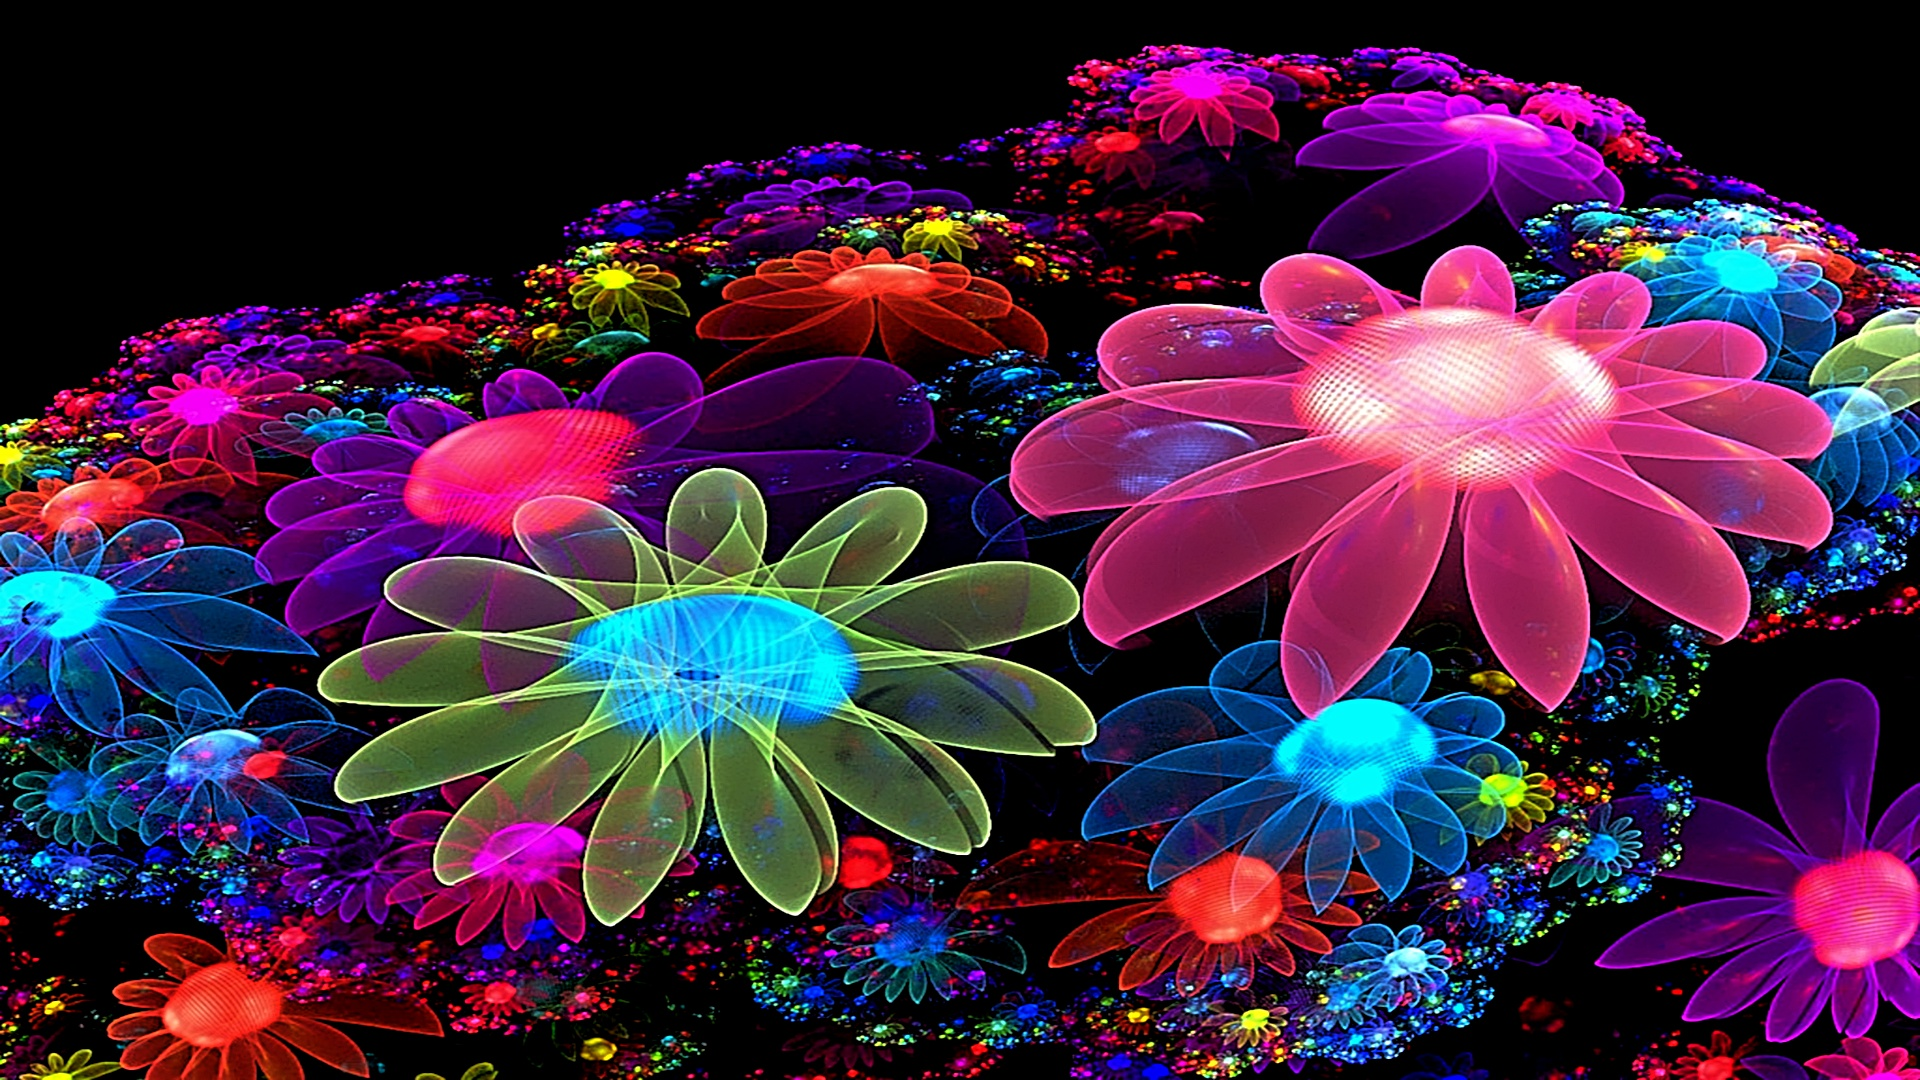 Download Colorful HQ wallpapers Images for Desktop HD 1920x1080